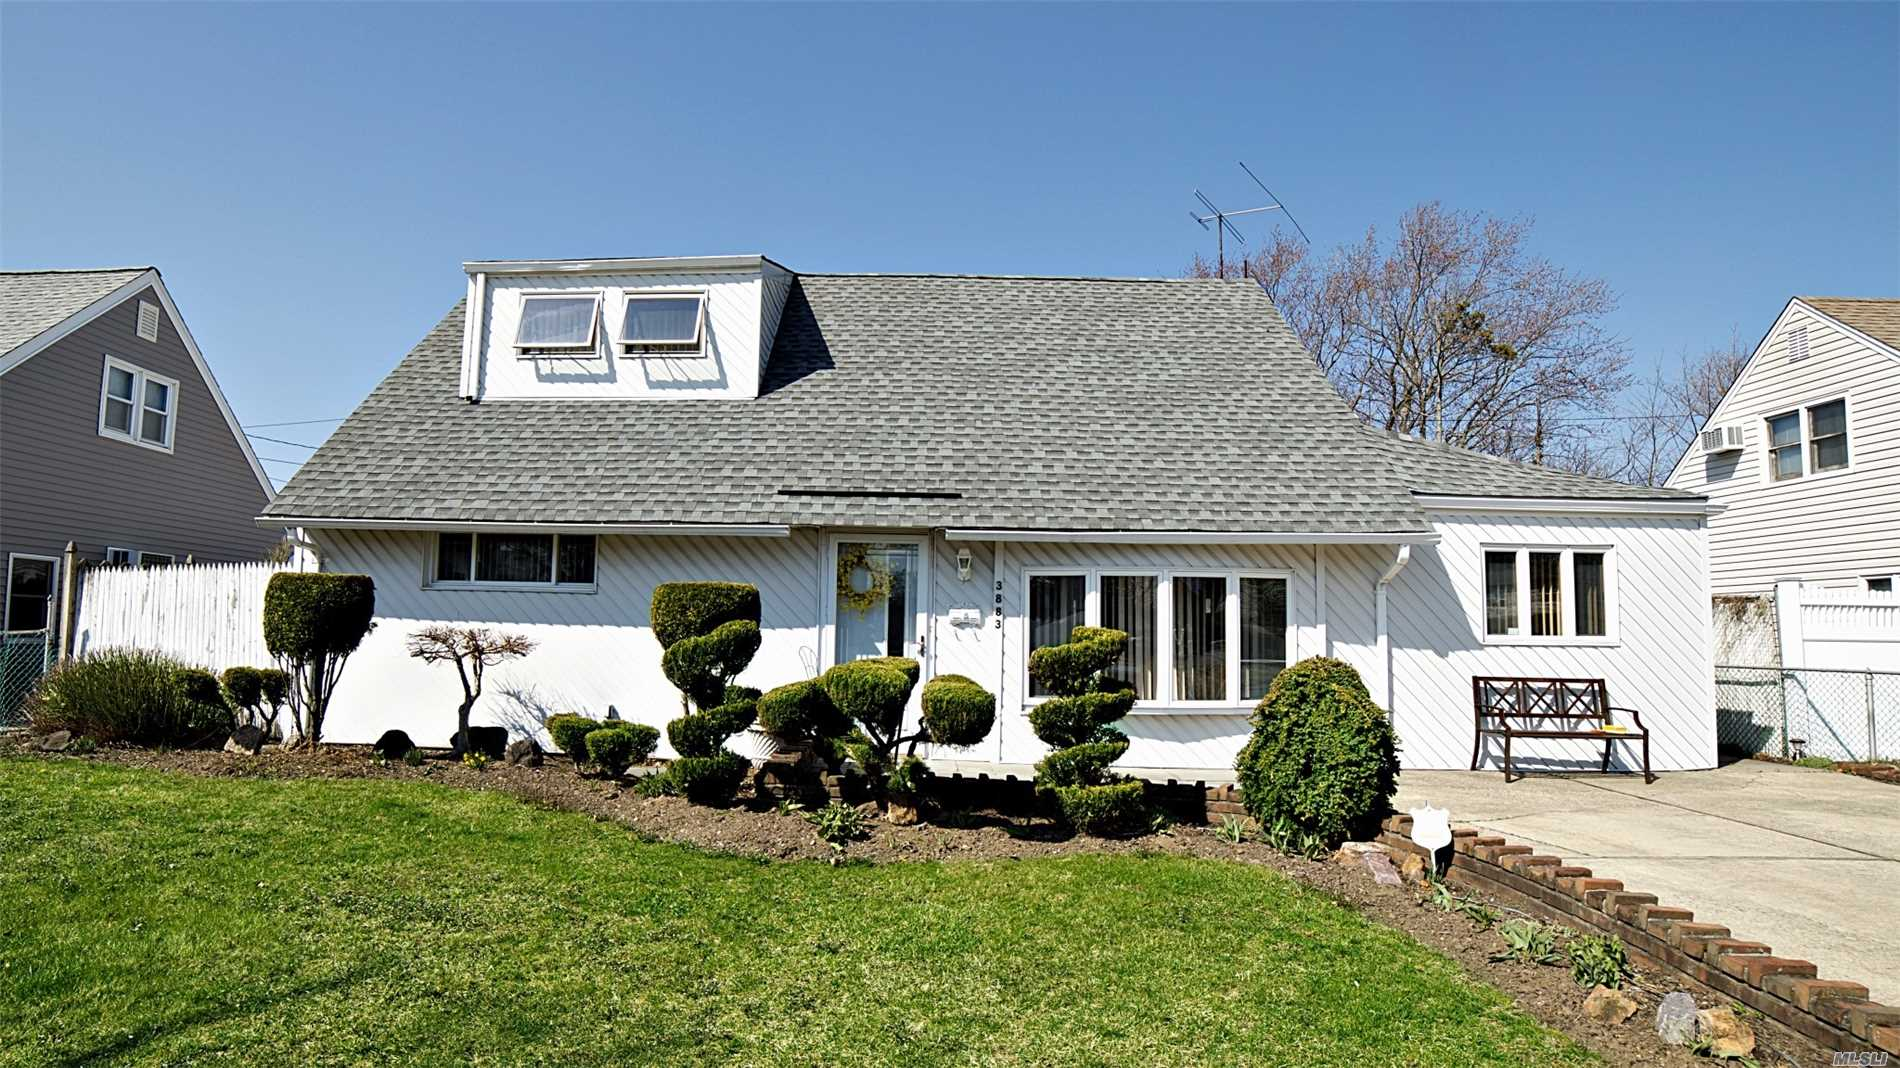 Lovely Cape features 4 bedrooms, 2 Full baths, Eat in Kitchen, Formal Dining Room, Huge den with two sky lights and sliding doors out to yard . Must See